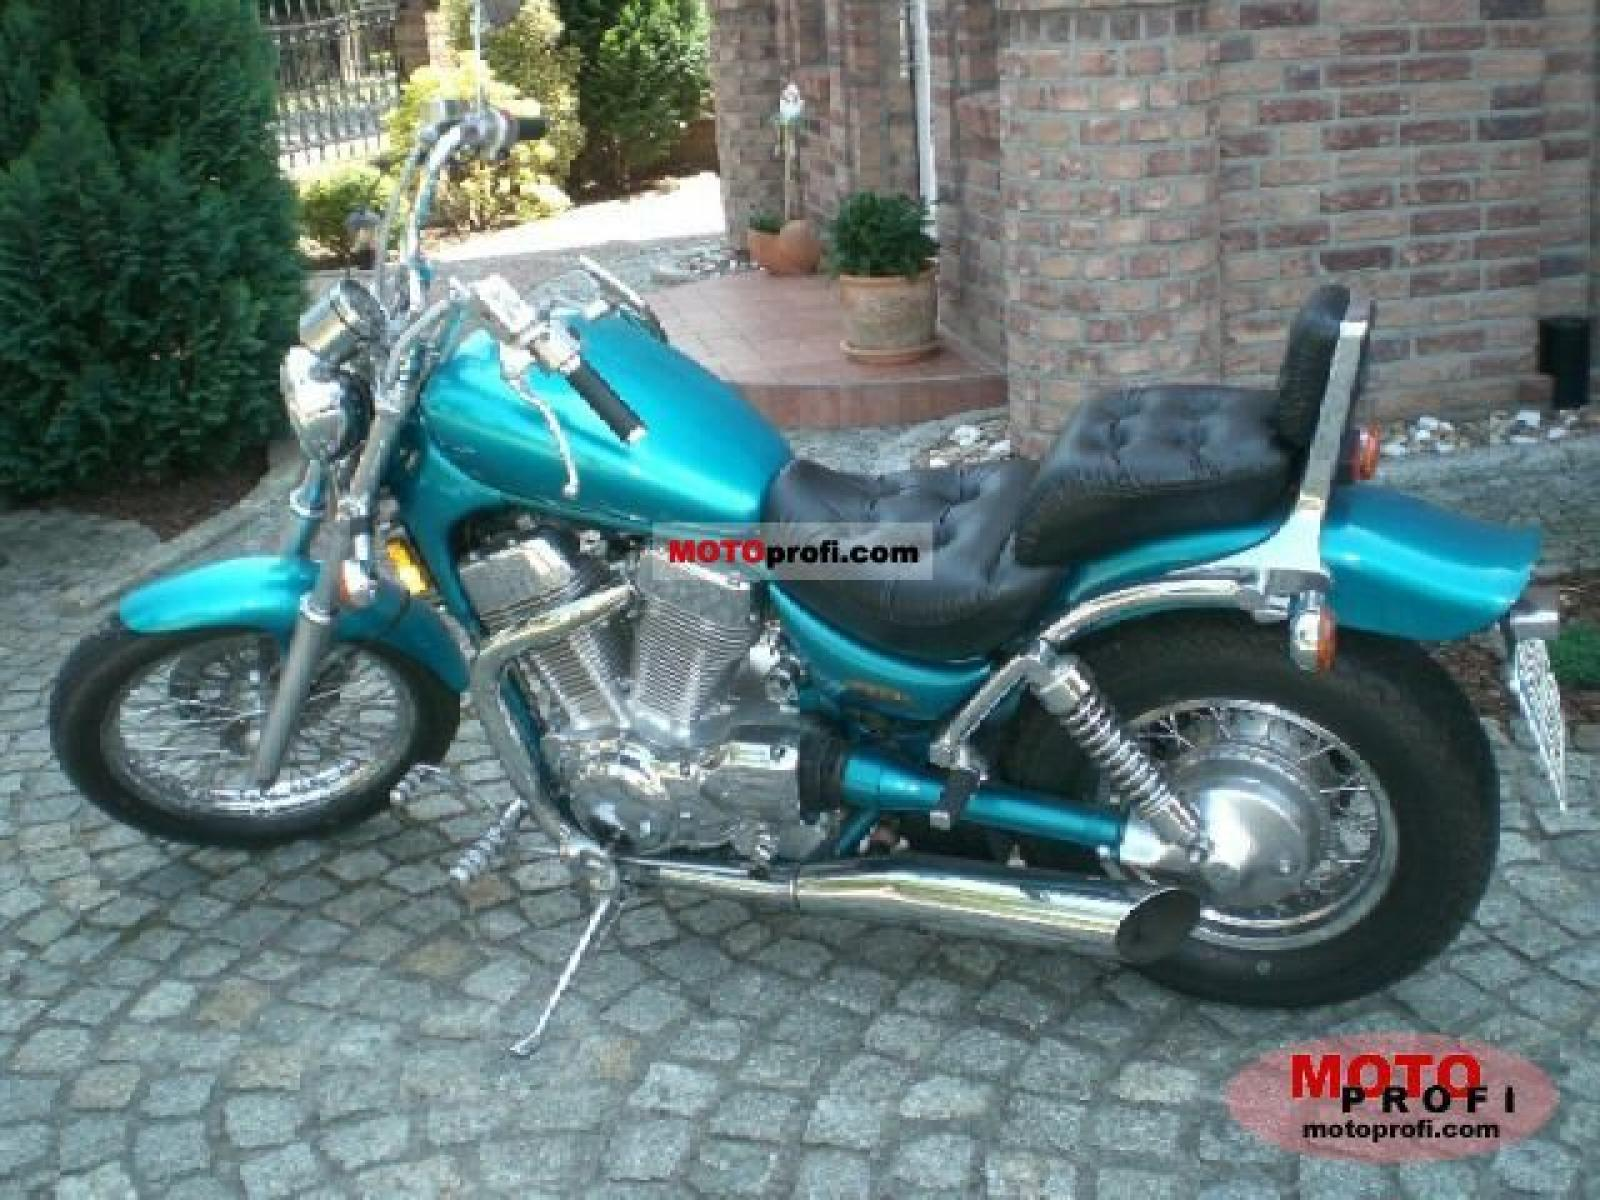 suzuki vs 1400 glp intruder 1997 9 1997 suzuki vs 1400 glp intruder moto zombdrive com suzuki intruder 1400 wiring diagram at gsmportal.co